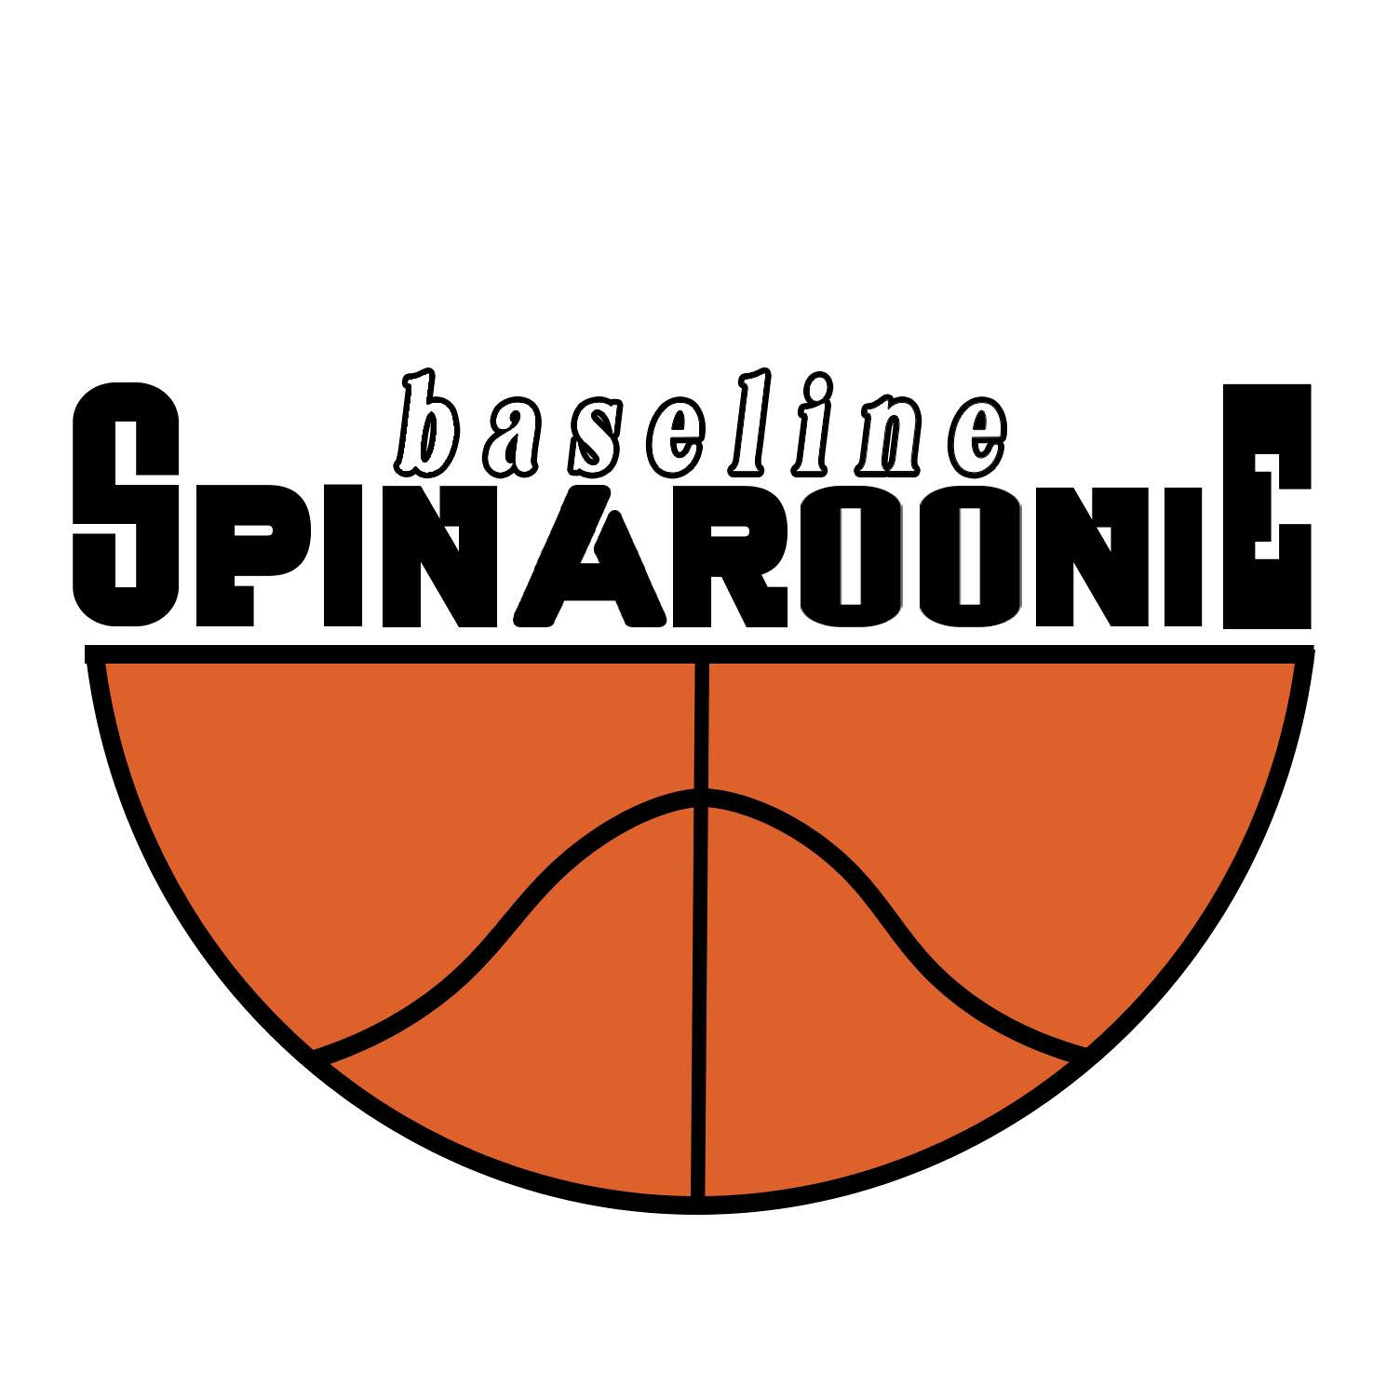 The Baseline Spinaroonie